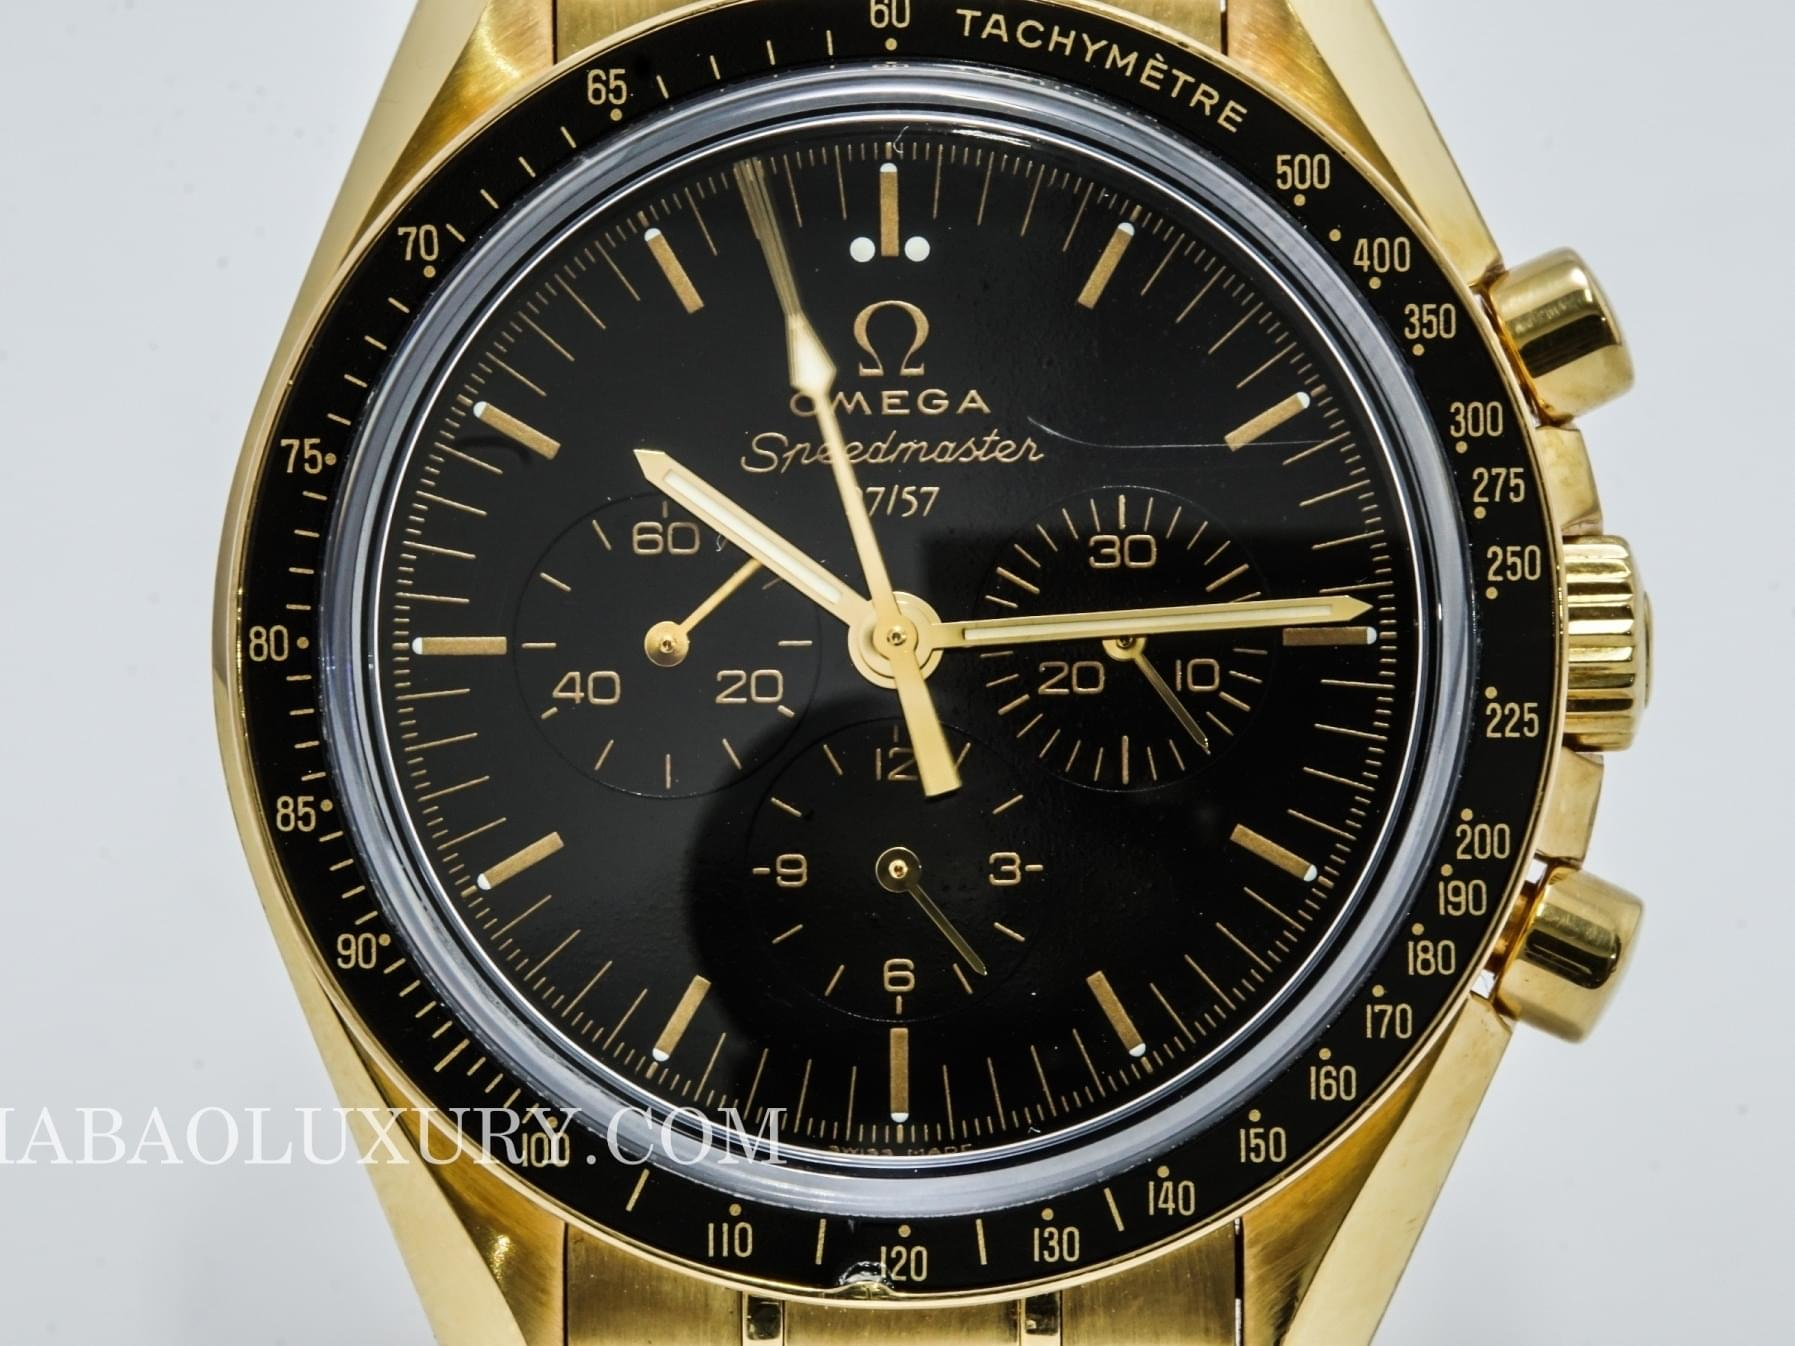 ĐỒNG HỒ OMEGA SPEEDMASTER MOON WATCH ANNIVERSARY 50TH